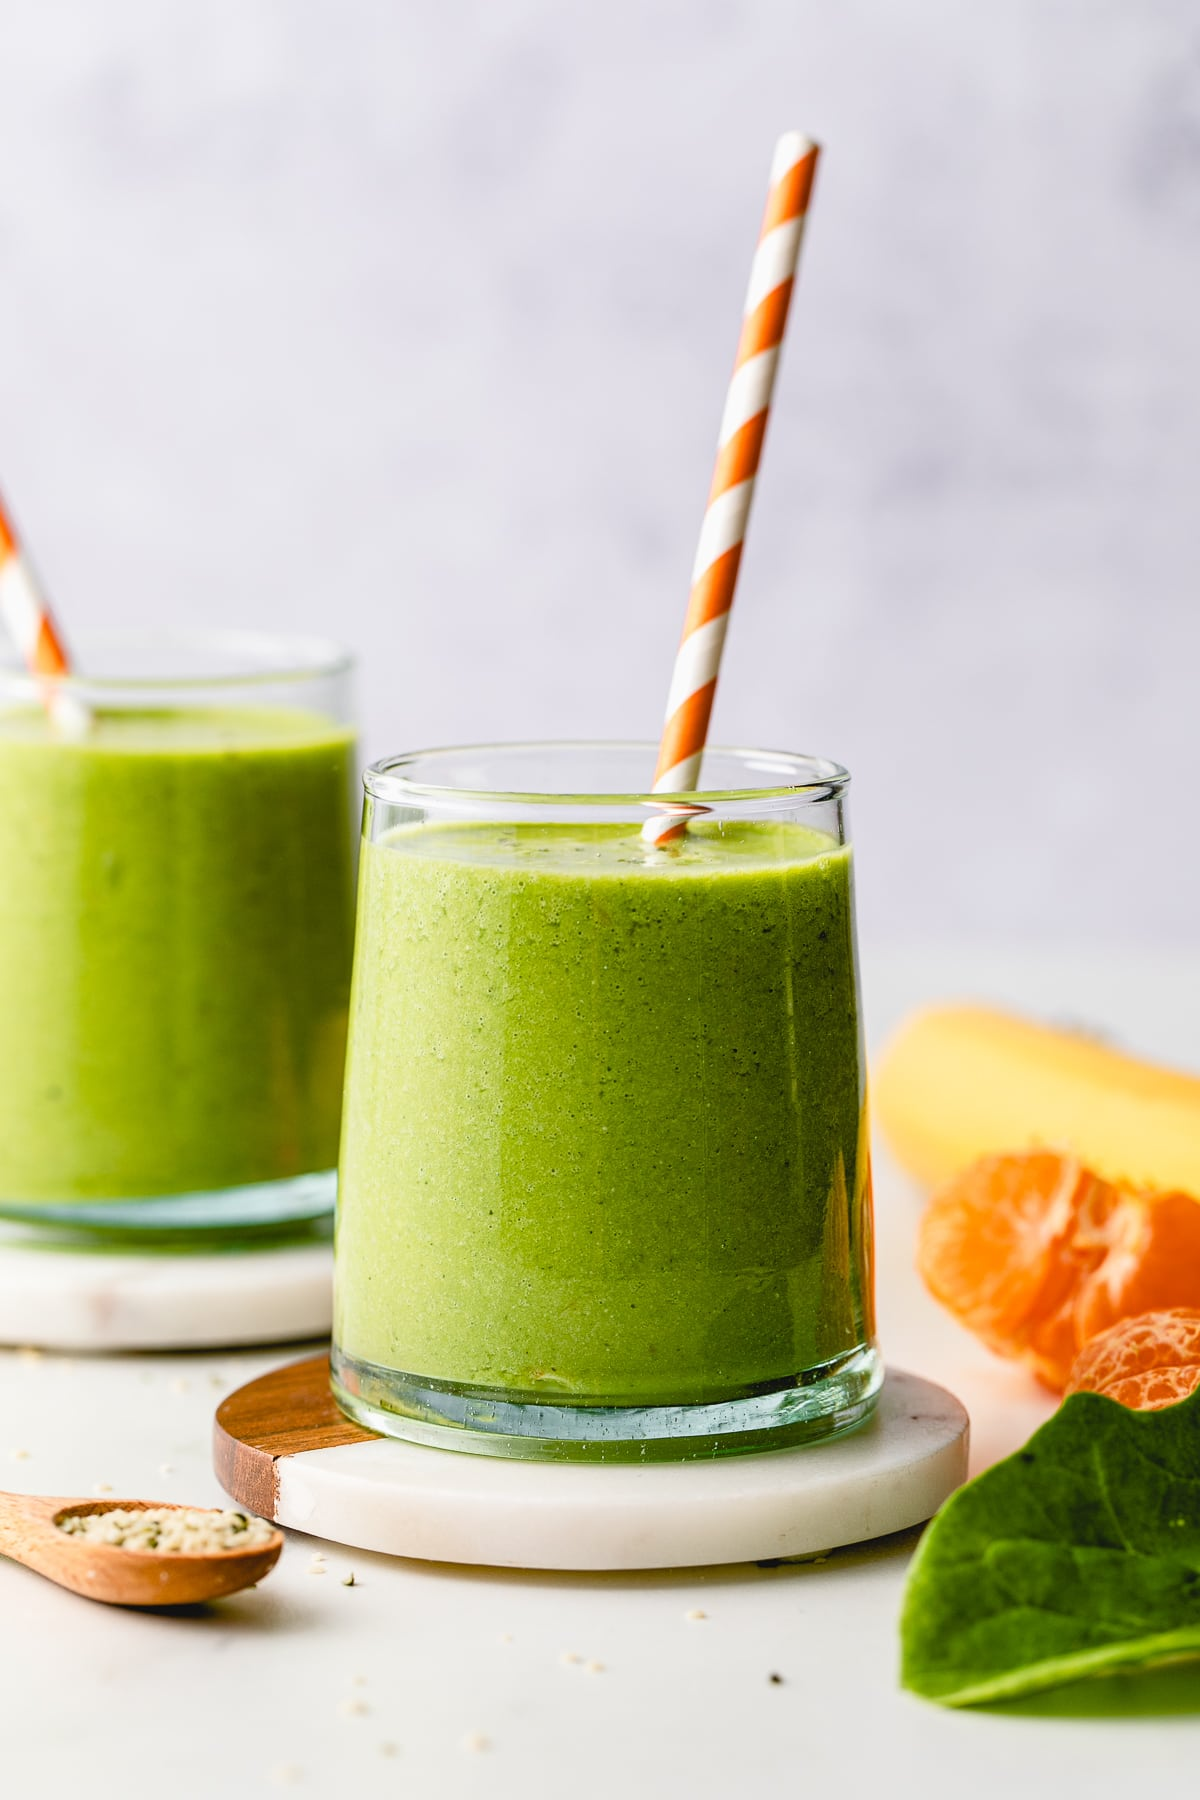 head on view of hemp smoothie in a glass with straw and items surrounding.